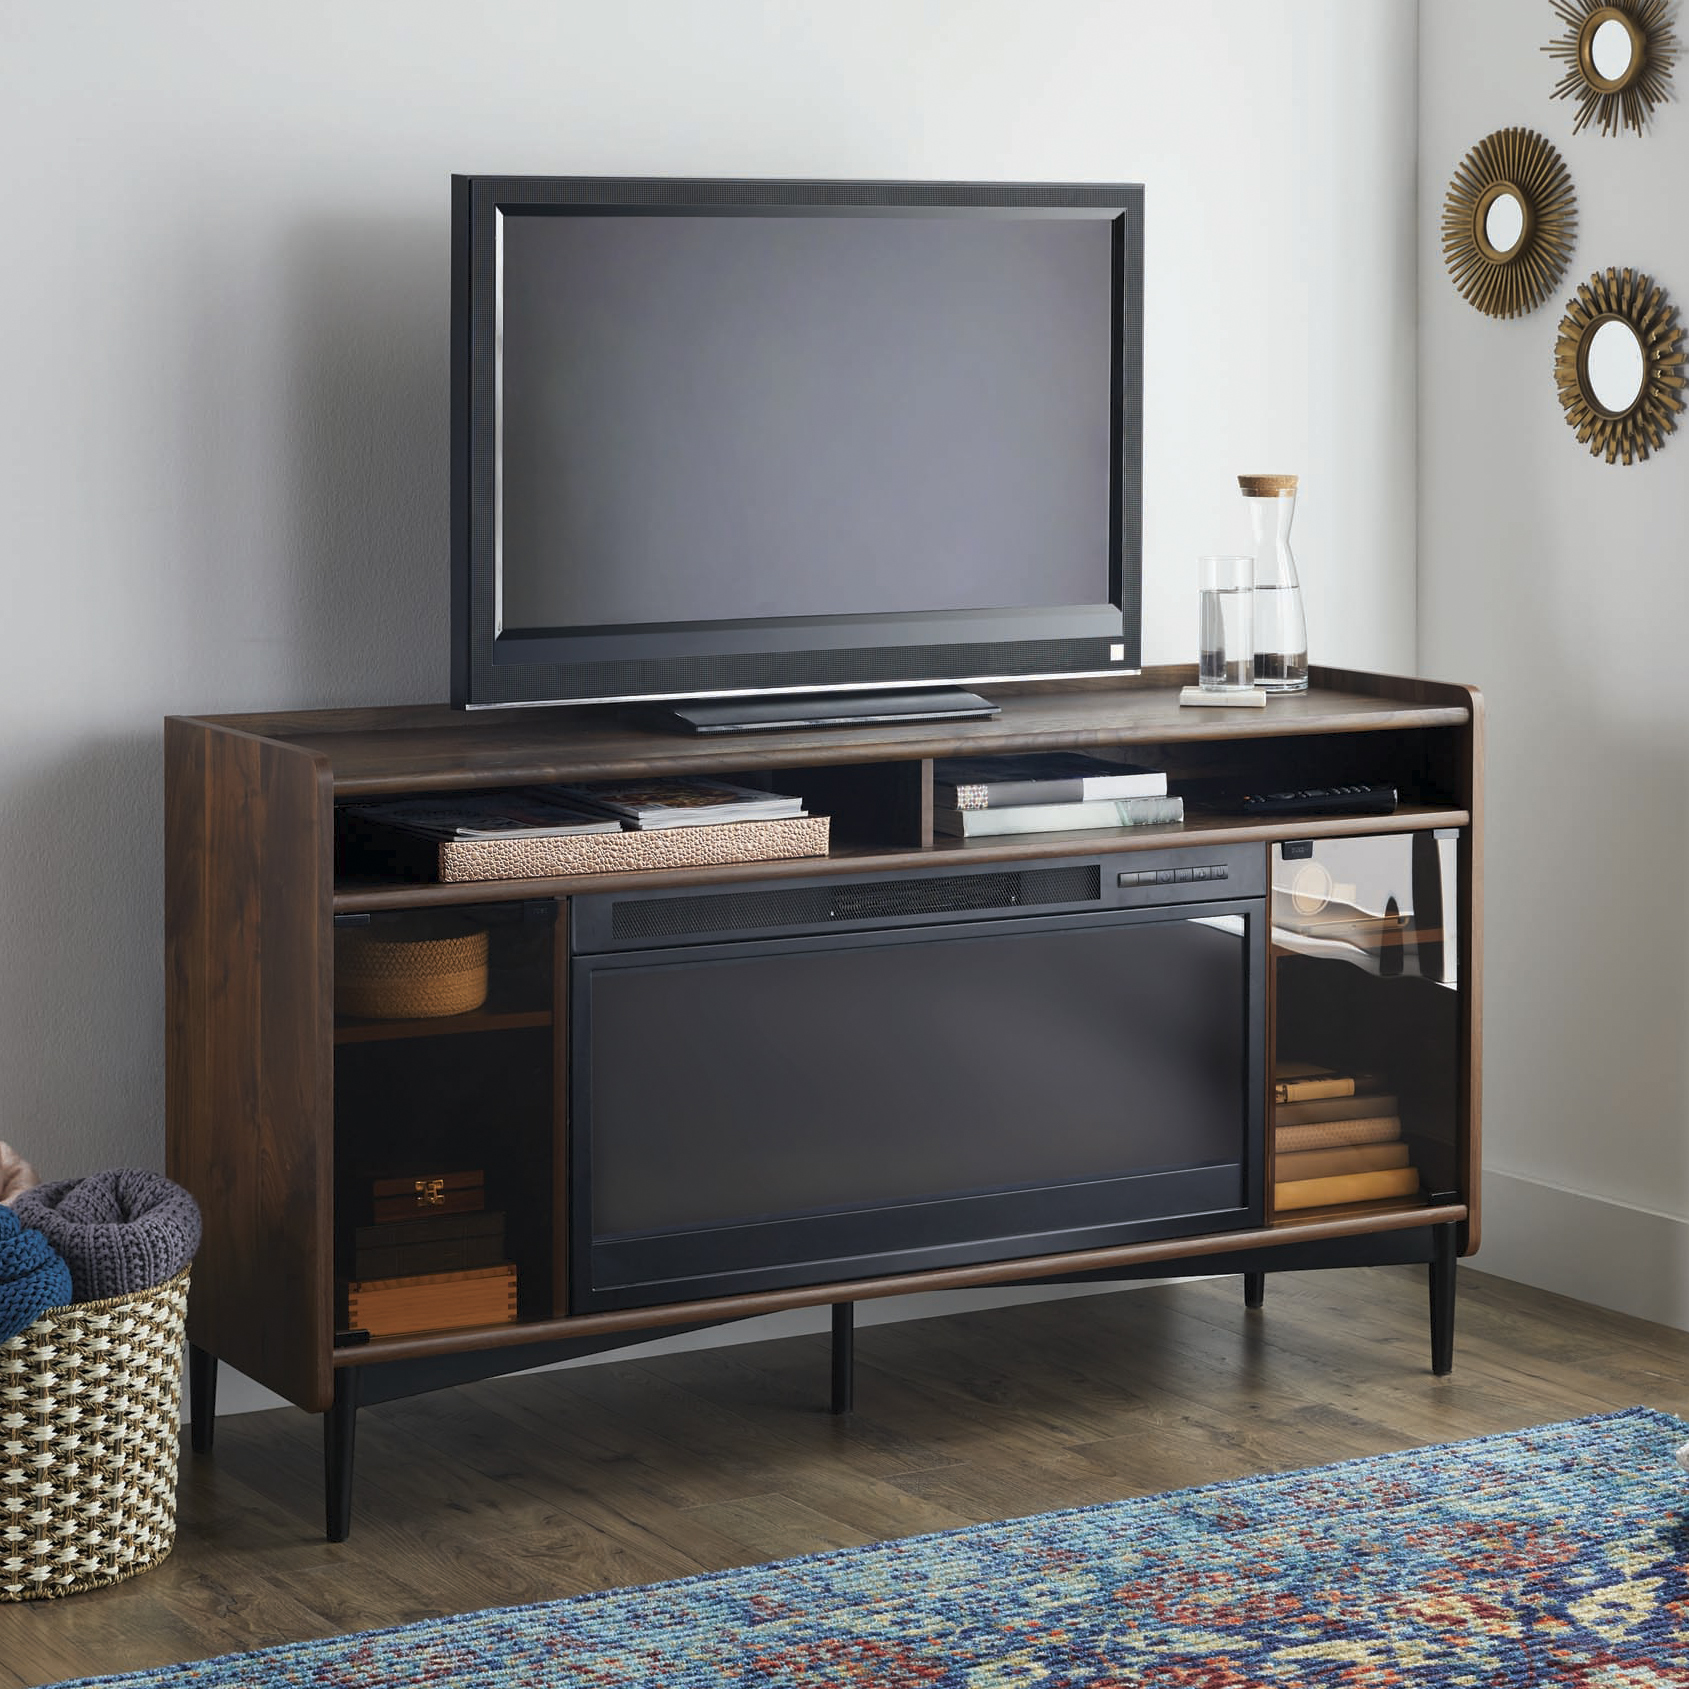 "Better Homes and Gardens Montclair Entertainment Fireplace Credenza for most 60"" Flatscreen TVs up to 70 lbs, Vintage Walnut Finish"